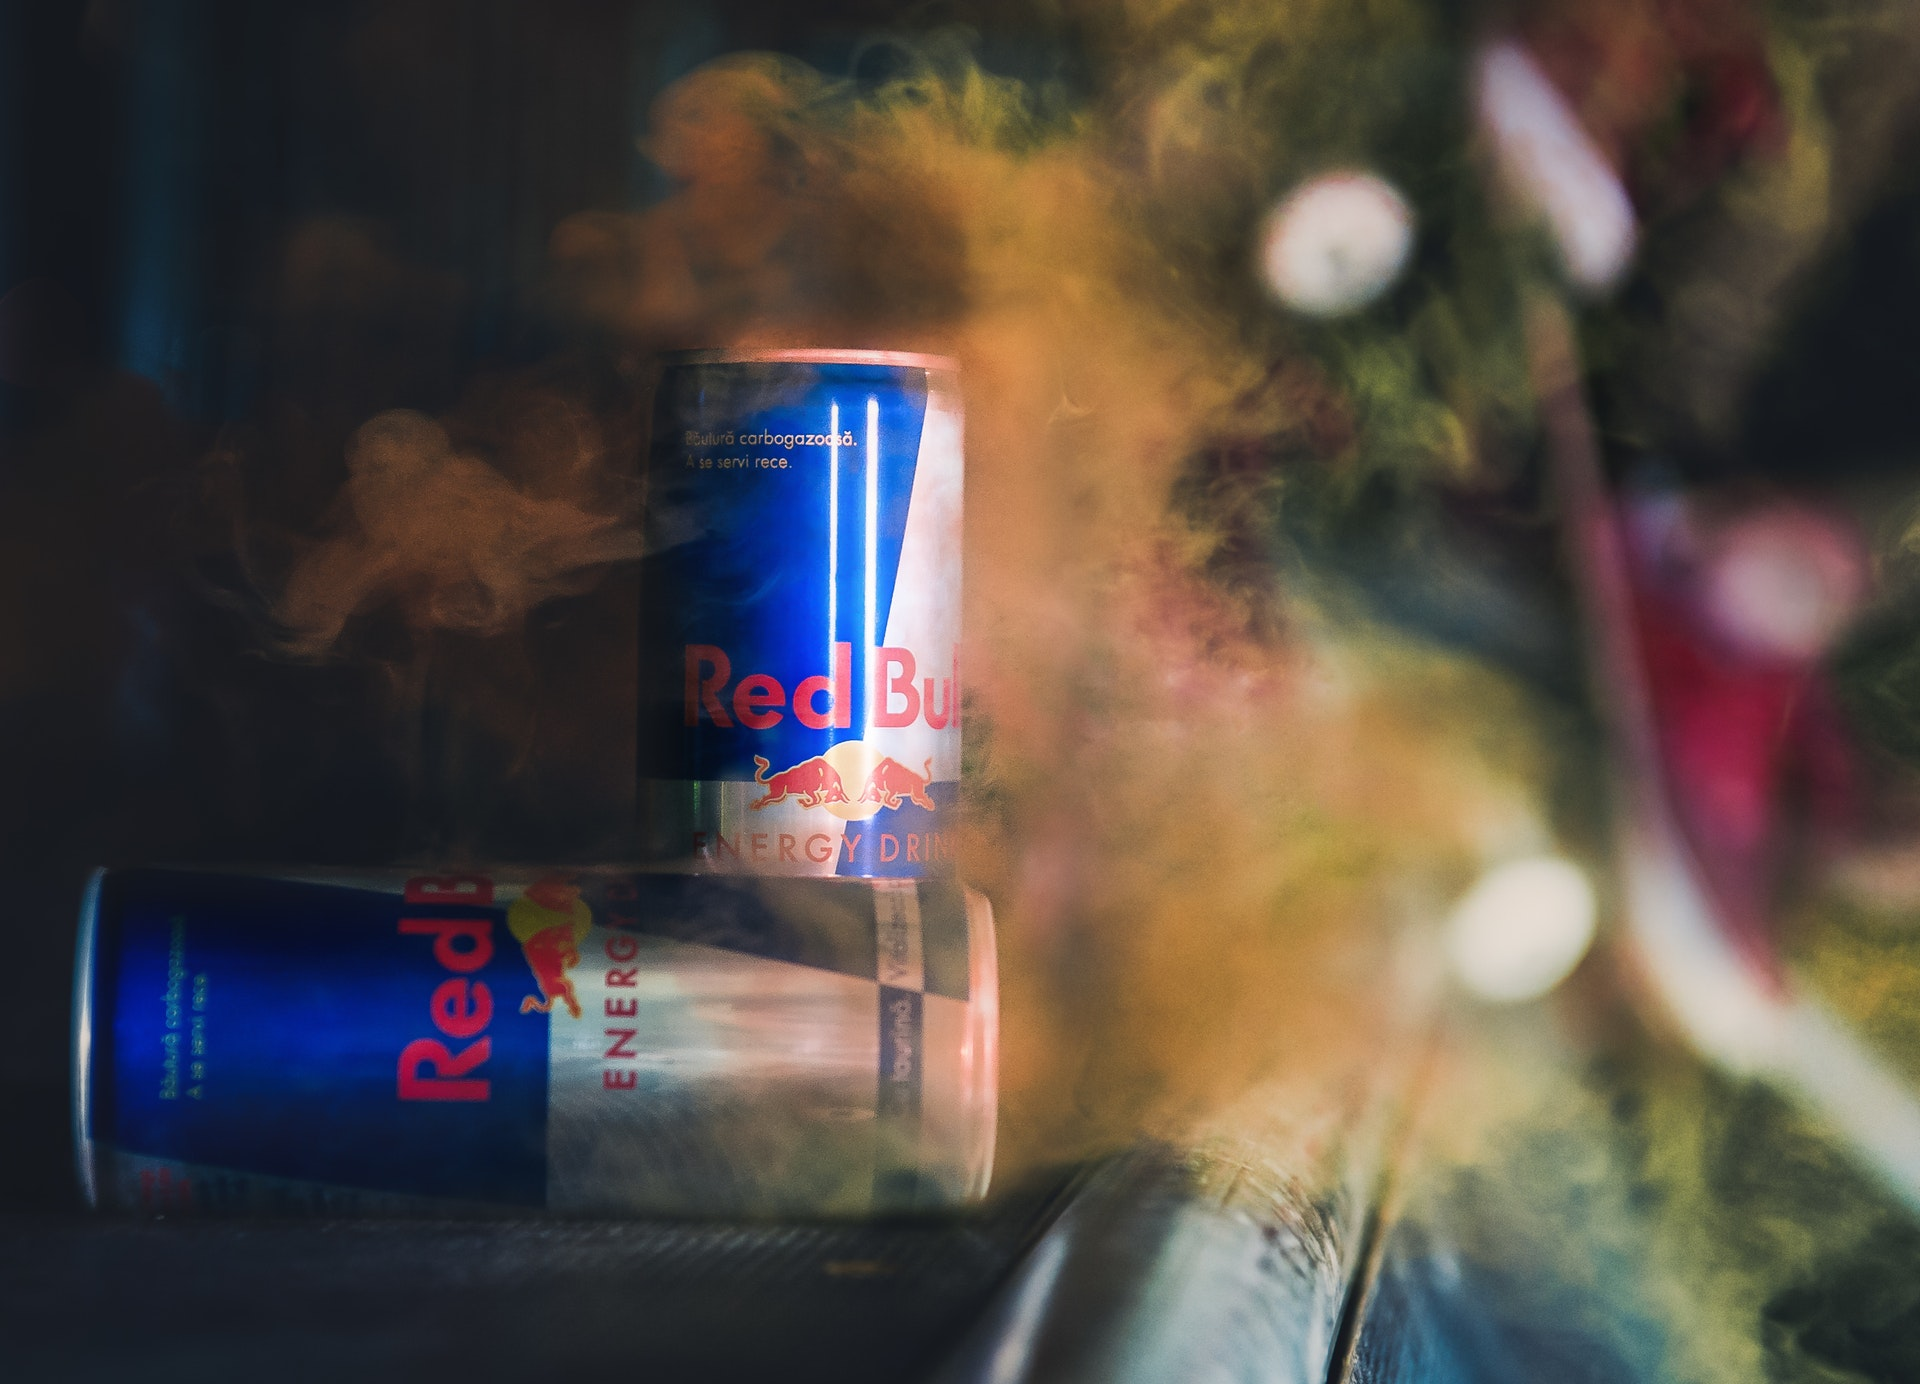 Red Bull cans in brown vapor or dust